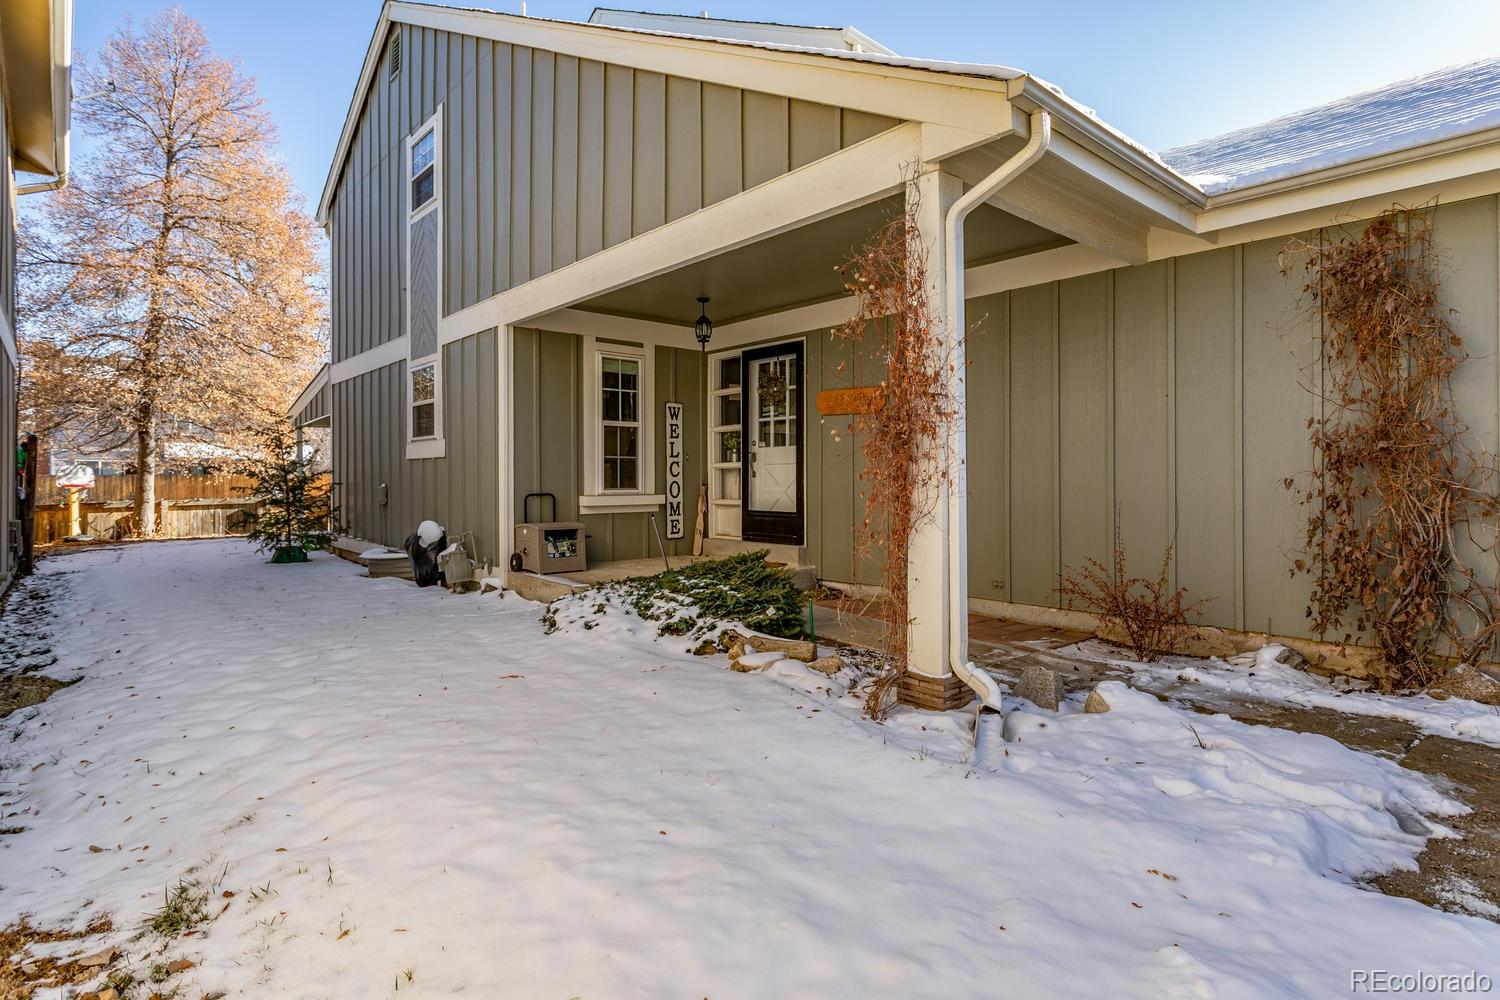 MLS# 6117171 - 27 - 9285 W 87th Place, Arvada, CO 80005